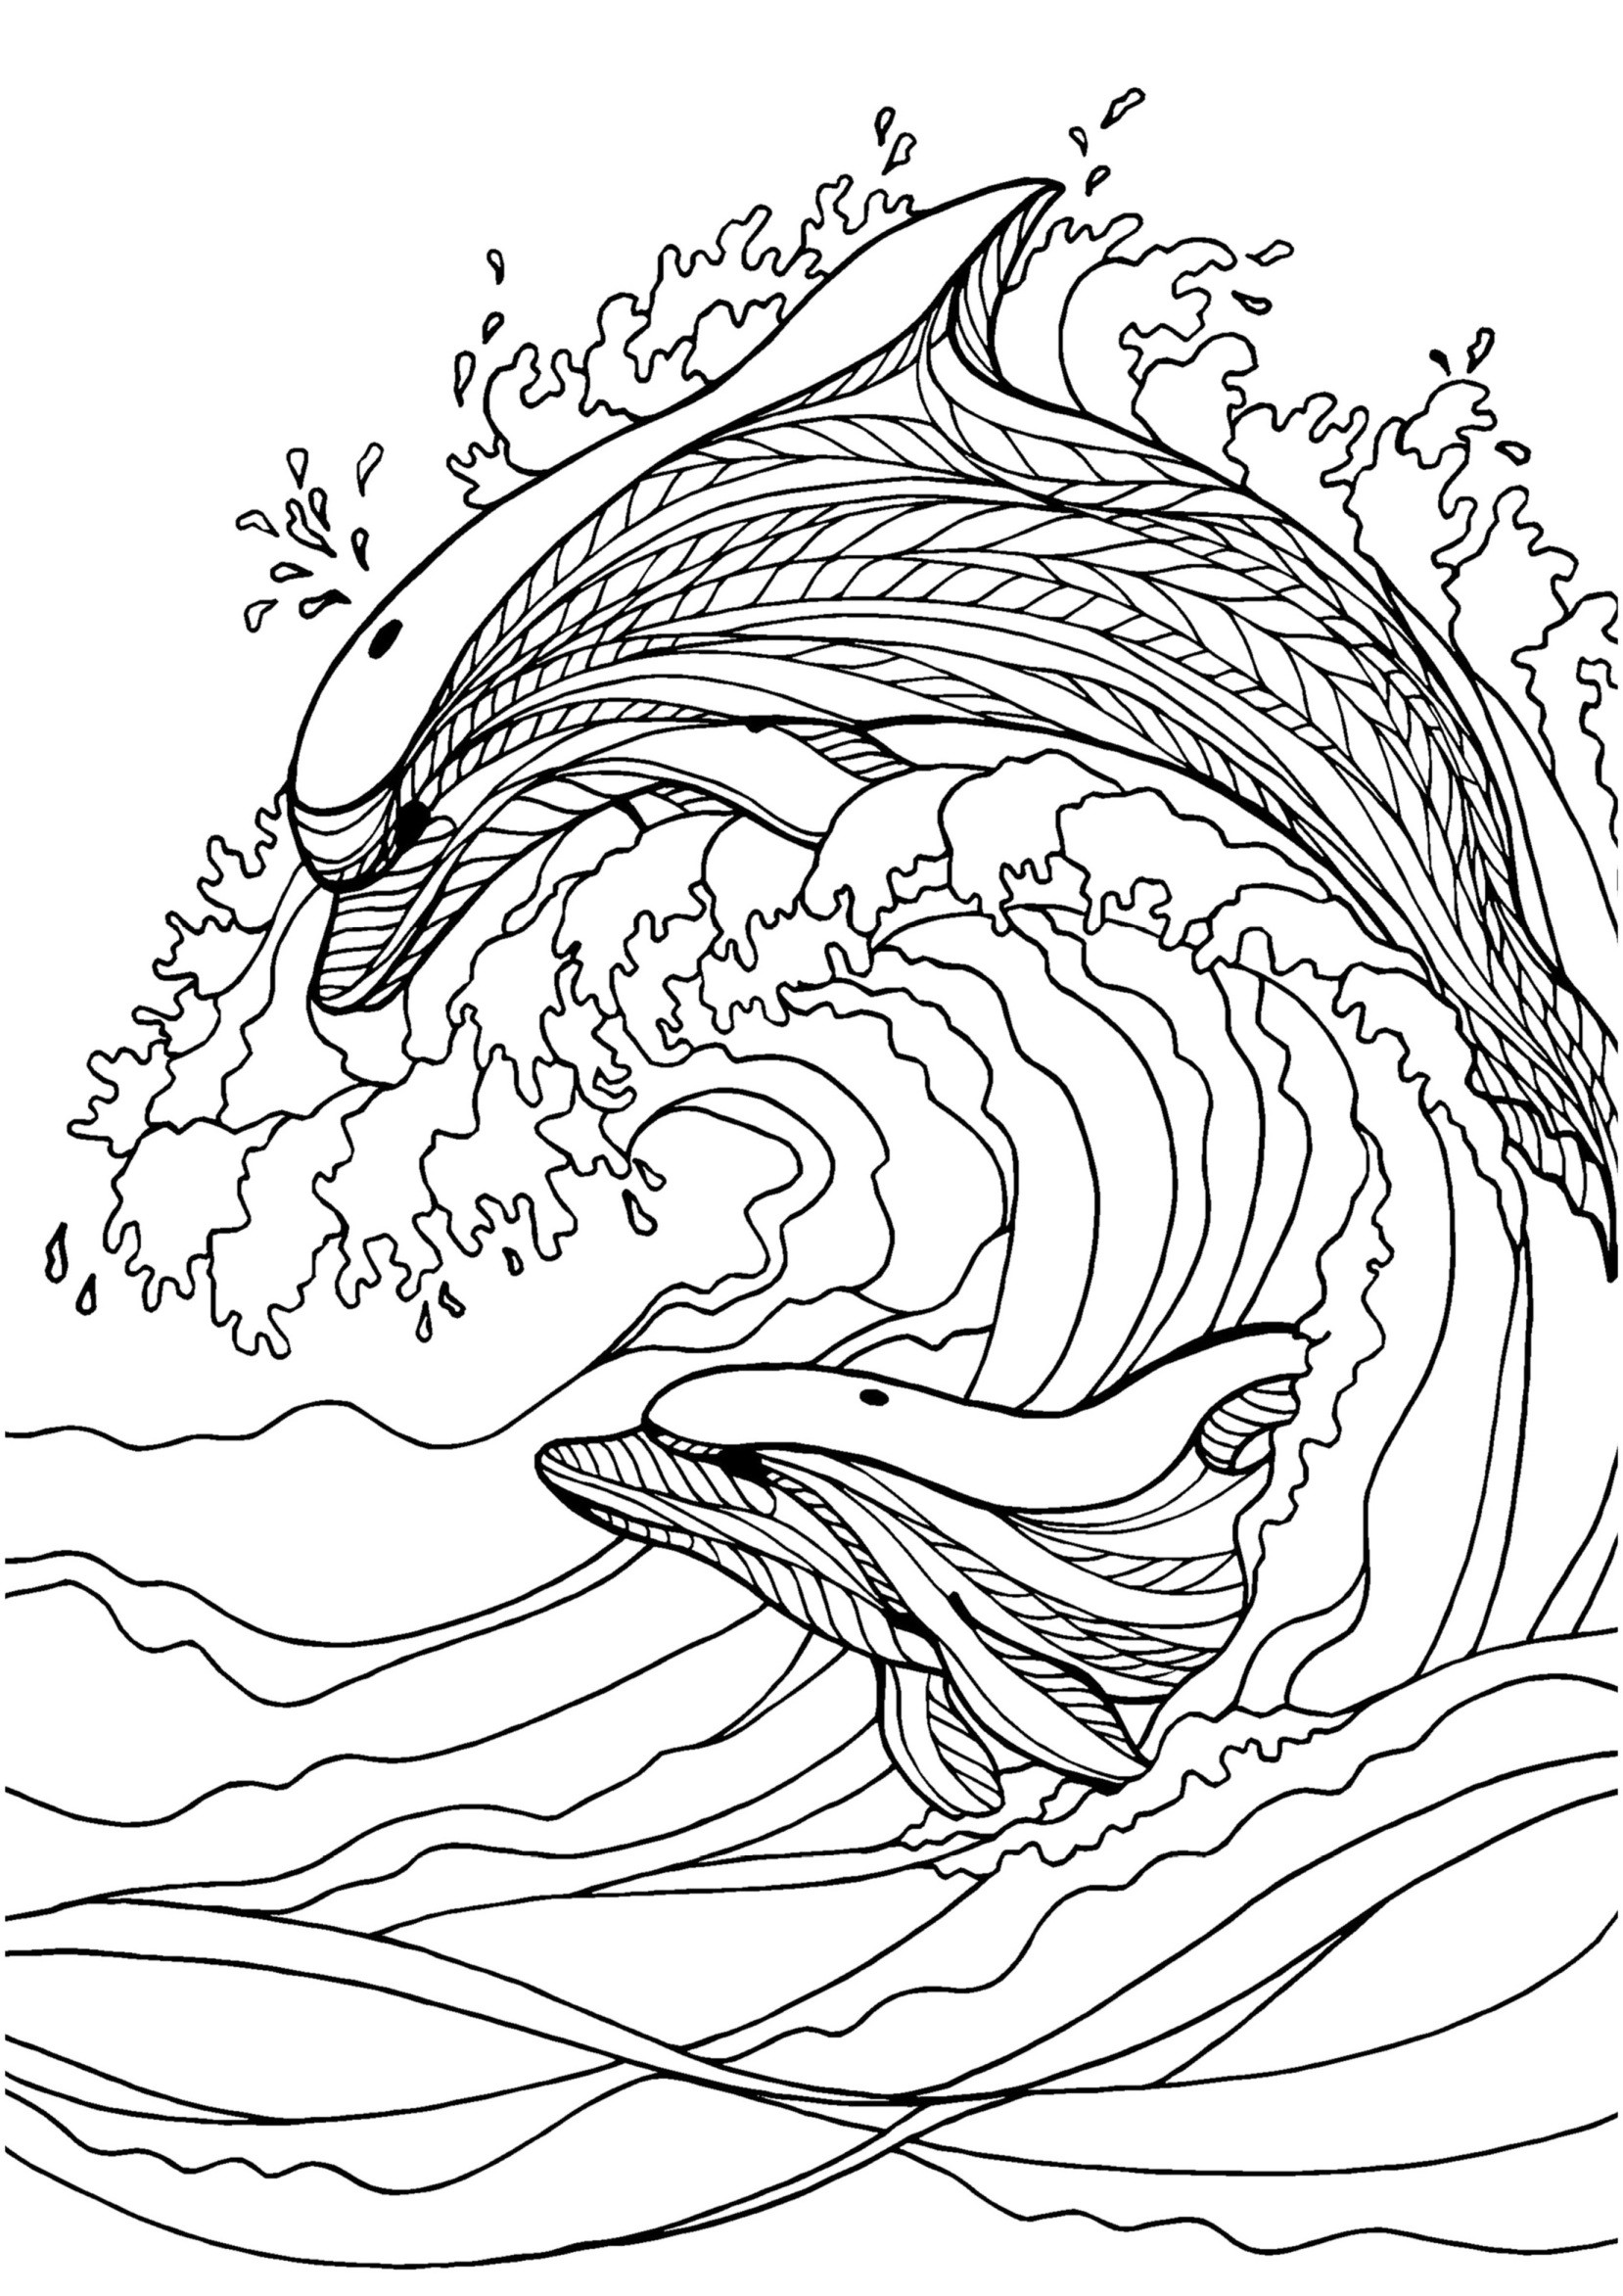 cute hard dolphin coloring pages dolphin coloring pages hard color and drawing dolphin coloring pages hard cute